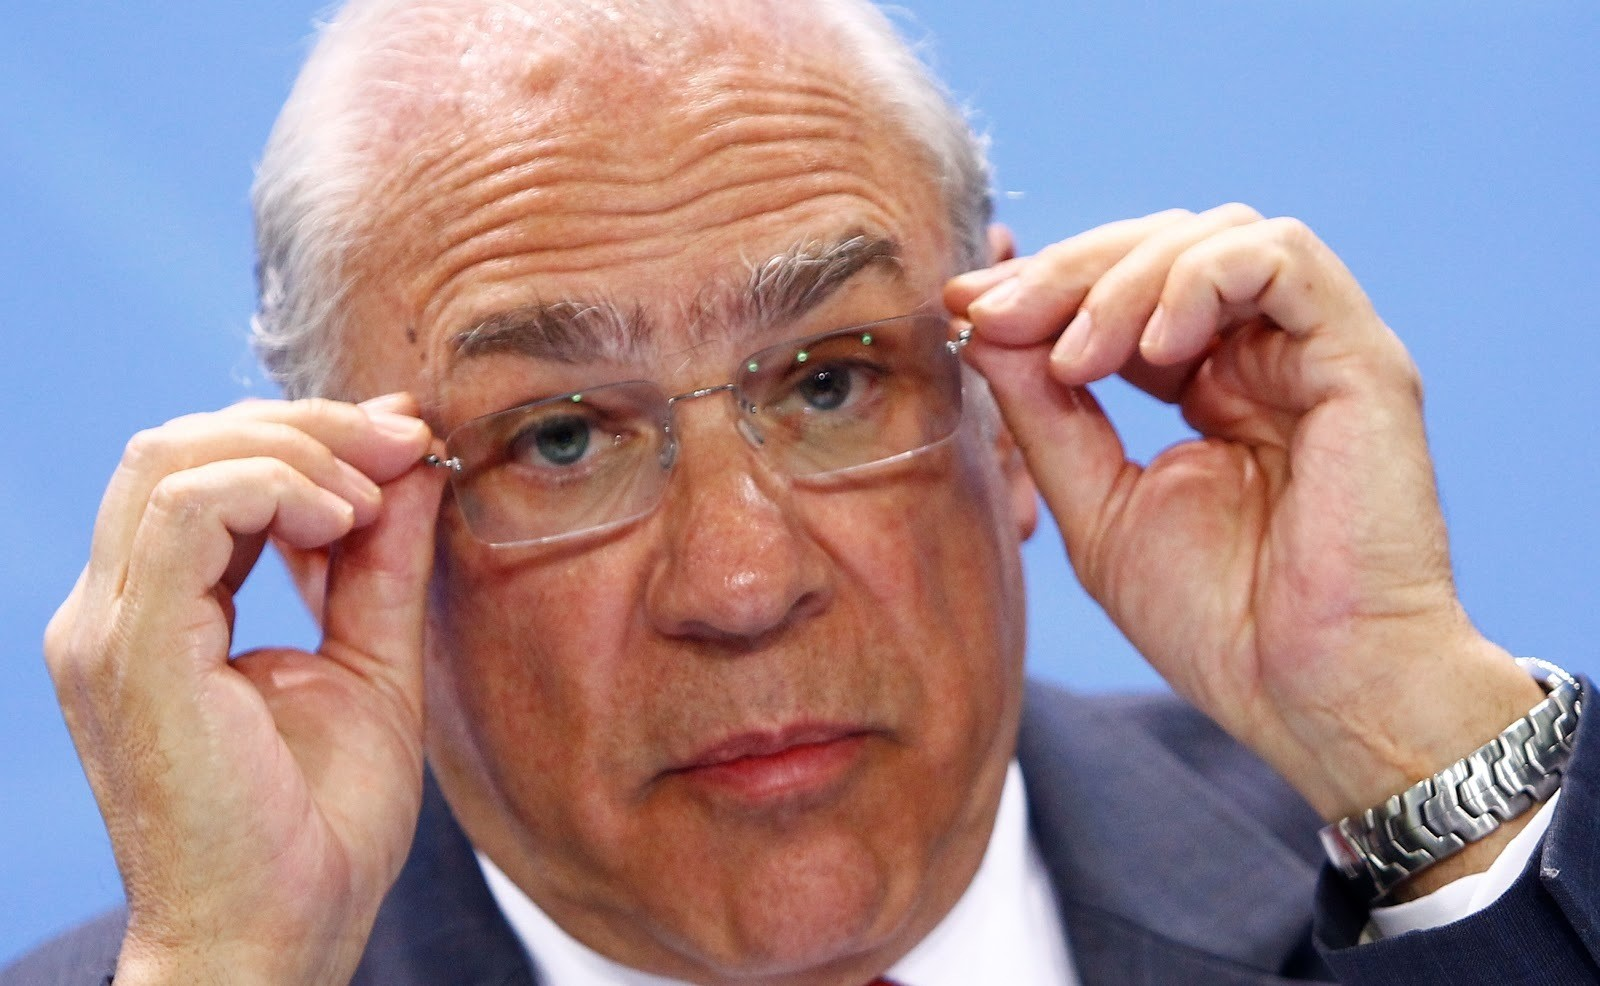 Jose Angel Gurria, Secretary-General of the Organisation for Economic Co-operation and Development (OECD) adjusts his glasses as he attends a news conference  with representatives of the trade organizations after a meeting in the chancellery in Berlin, Germany, June 11, 2018. REUTERS/Michele Tantussi - RC1AB57BE180